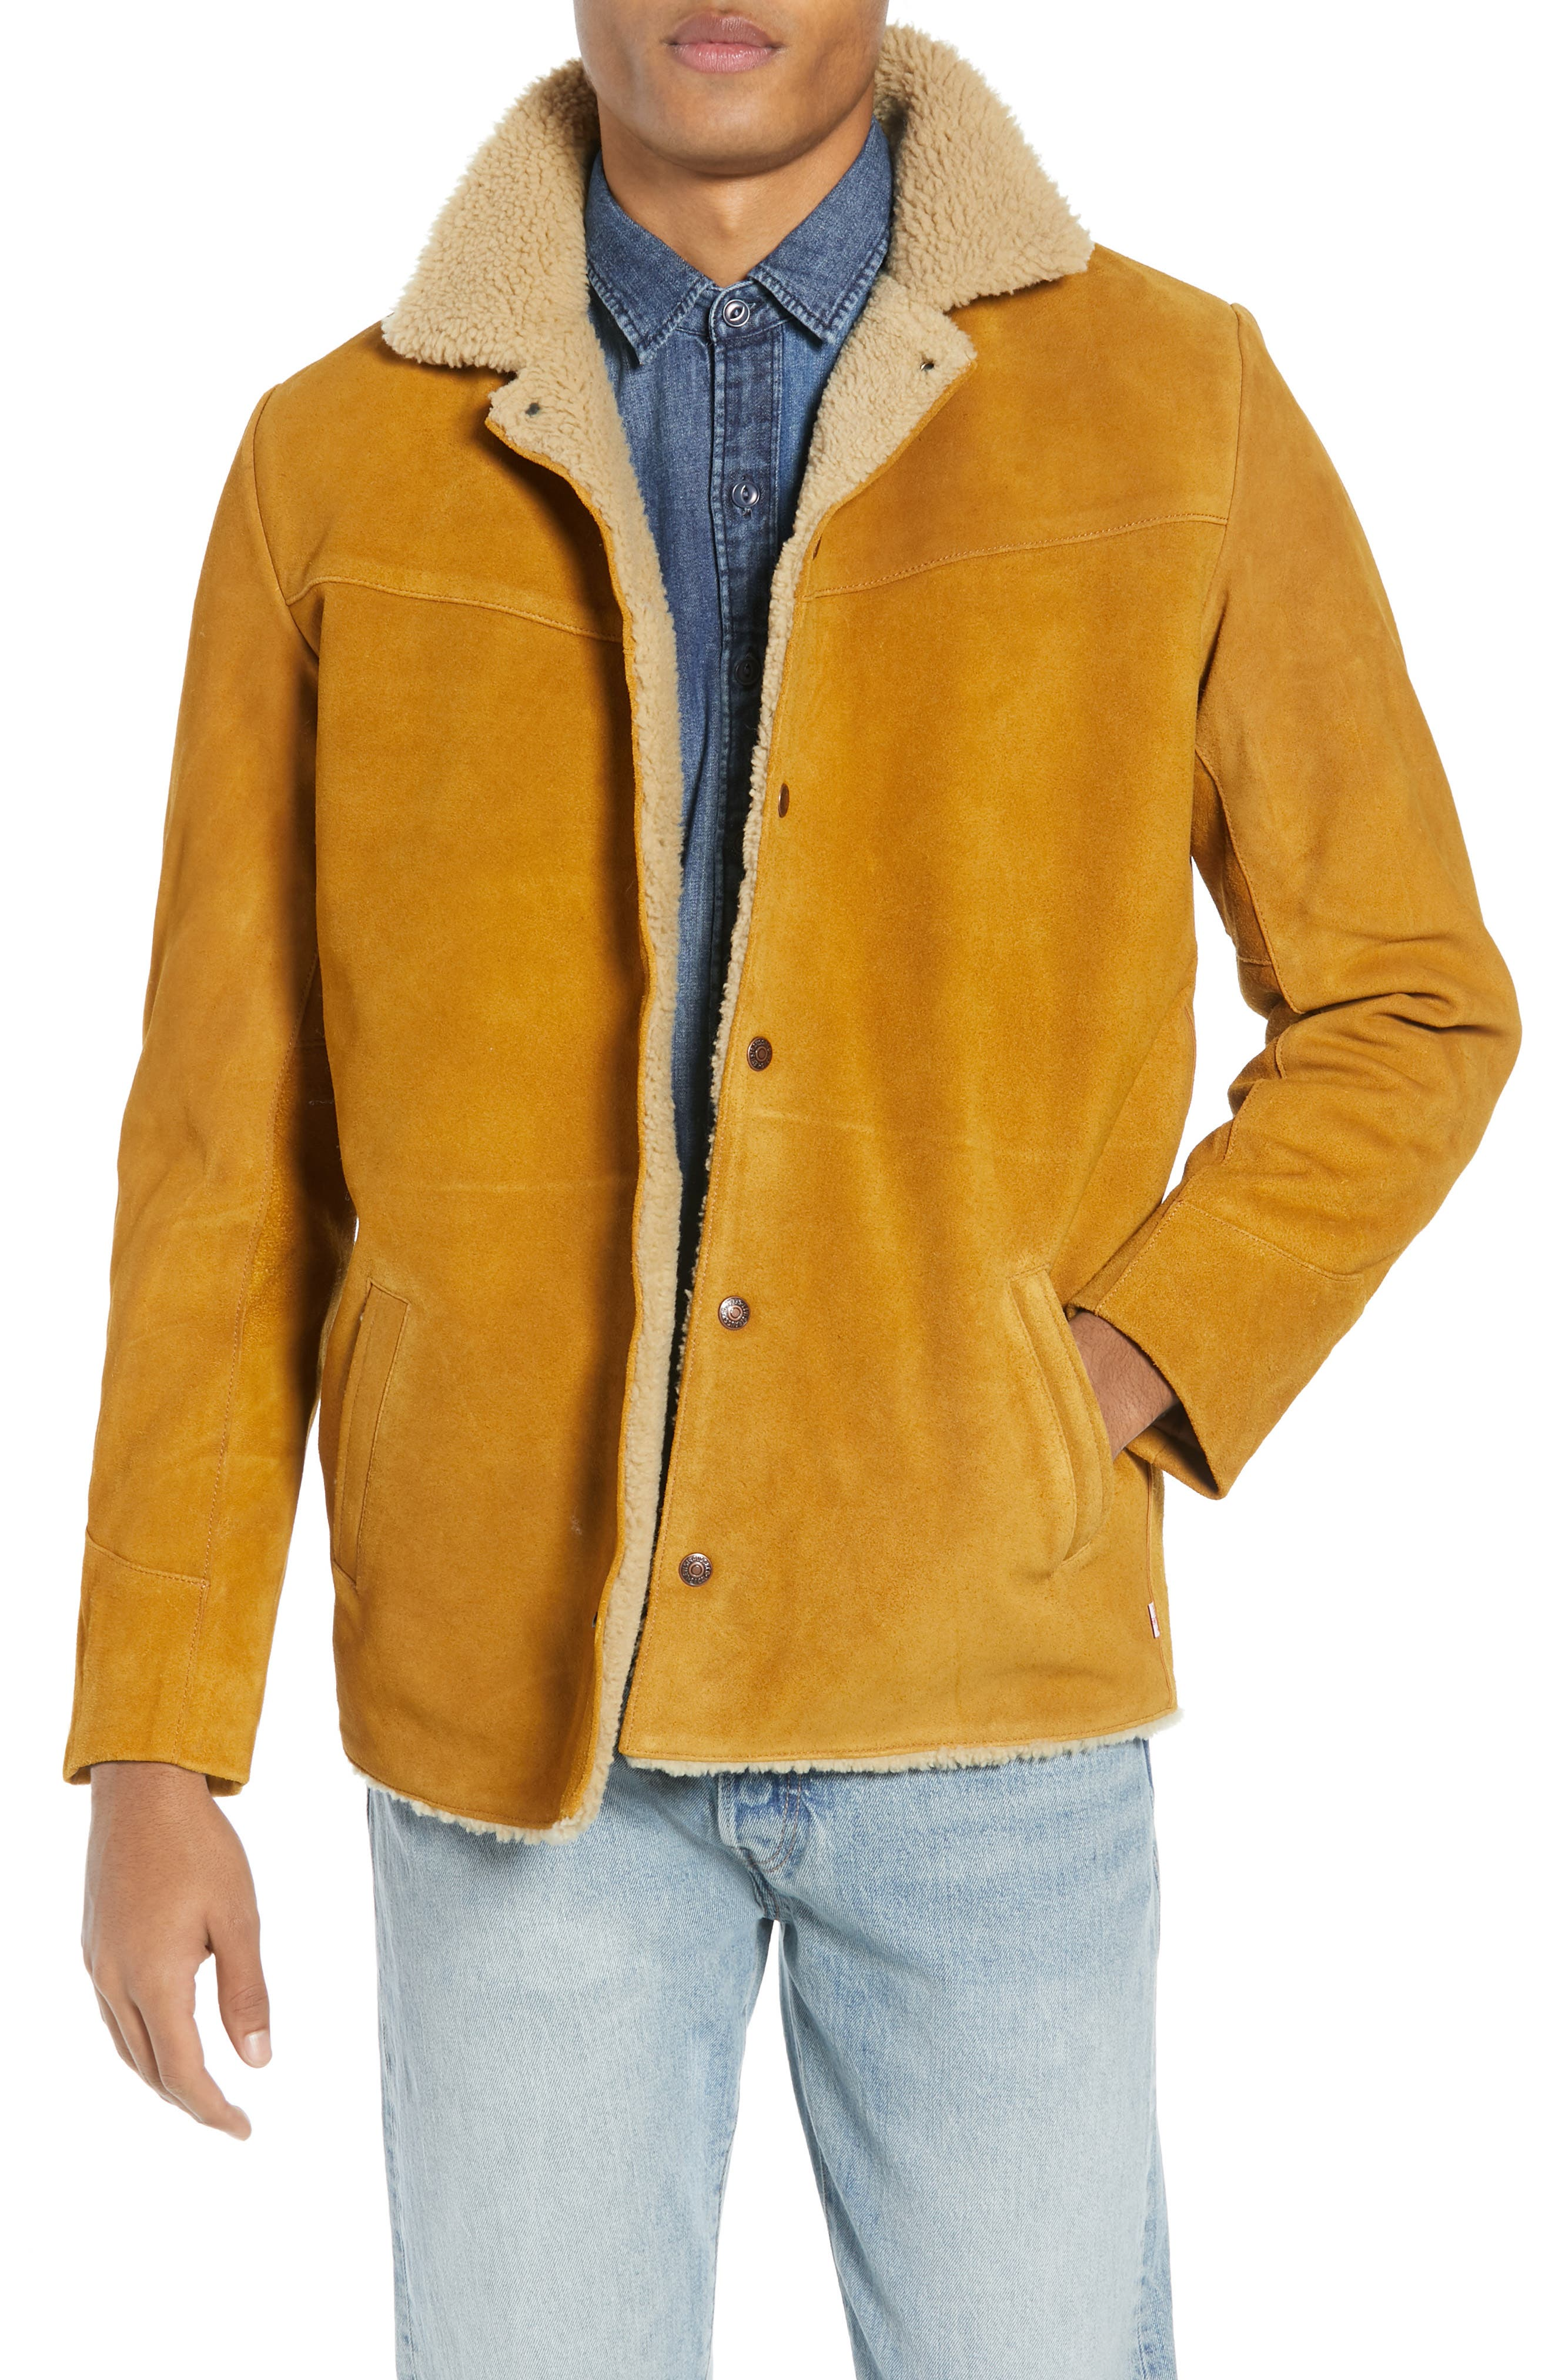 Levi's<sup>®</sup> Fleece Lined Suede Jacket,                             Main thumbnail 1, color,                             250